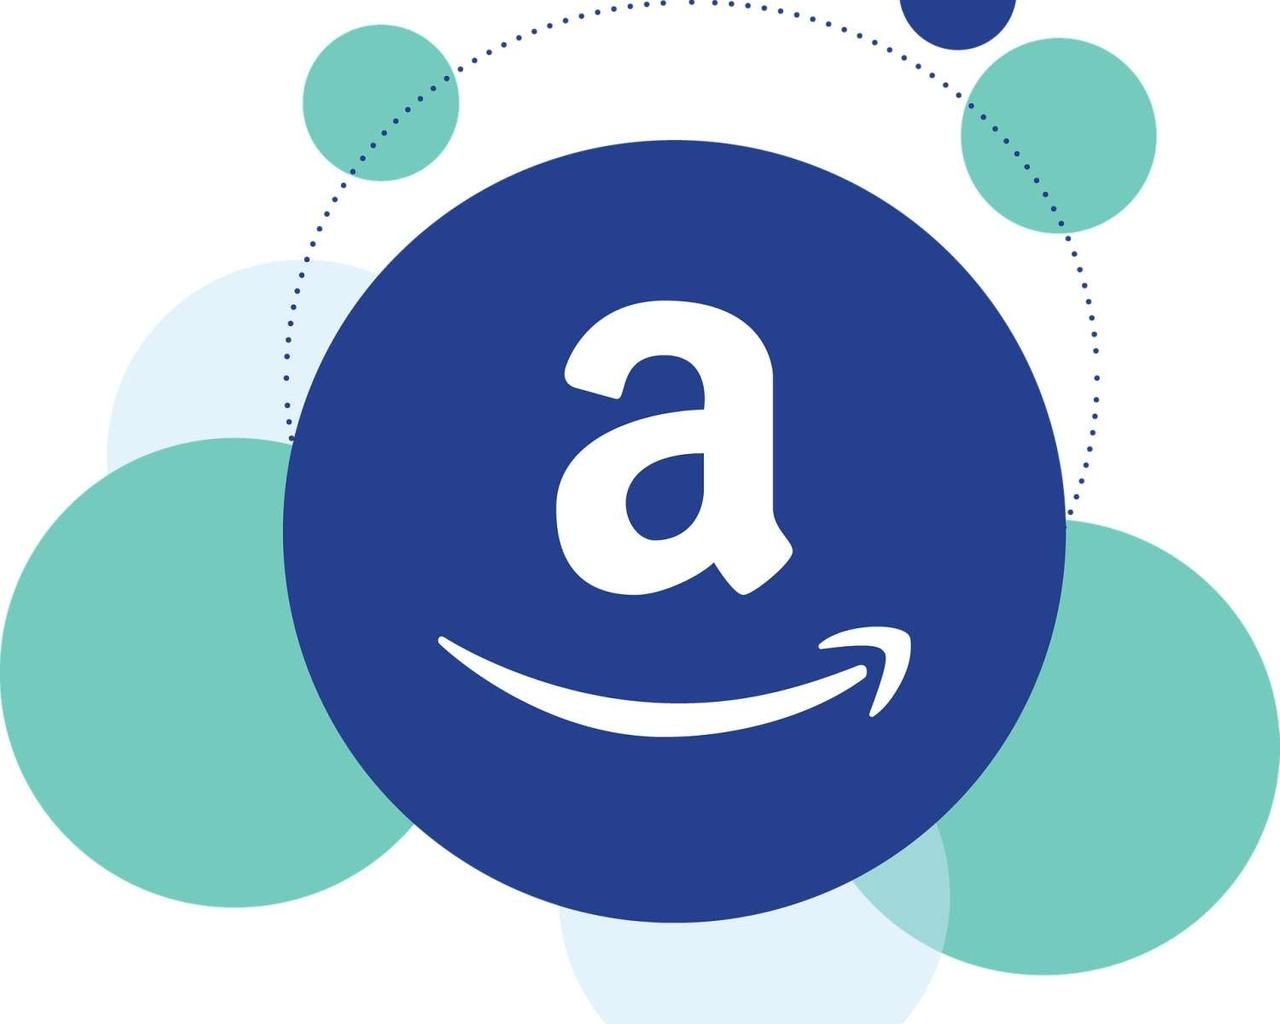 Democrats Throw Amazon Under The Bus—Using Company To Campaign On